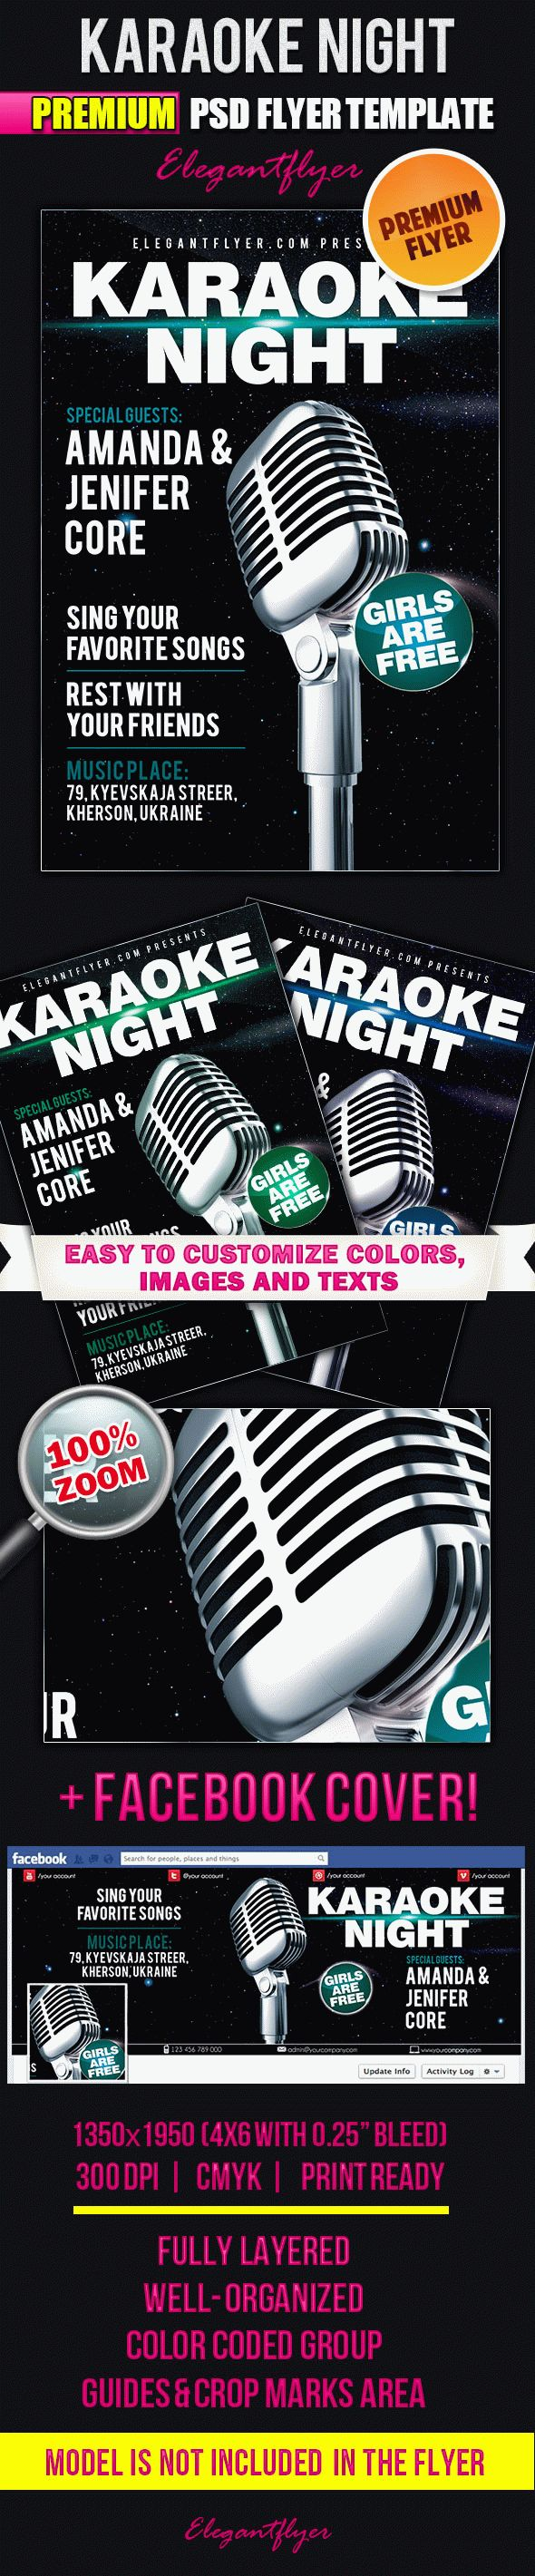 Template for Karaoke Ladies Night